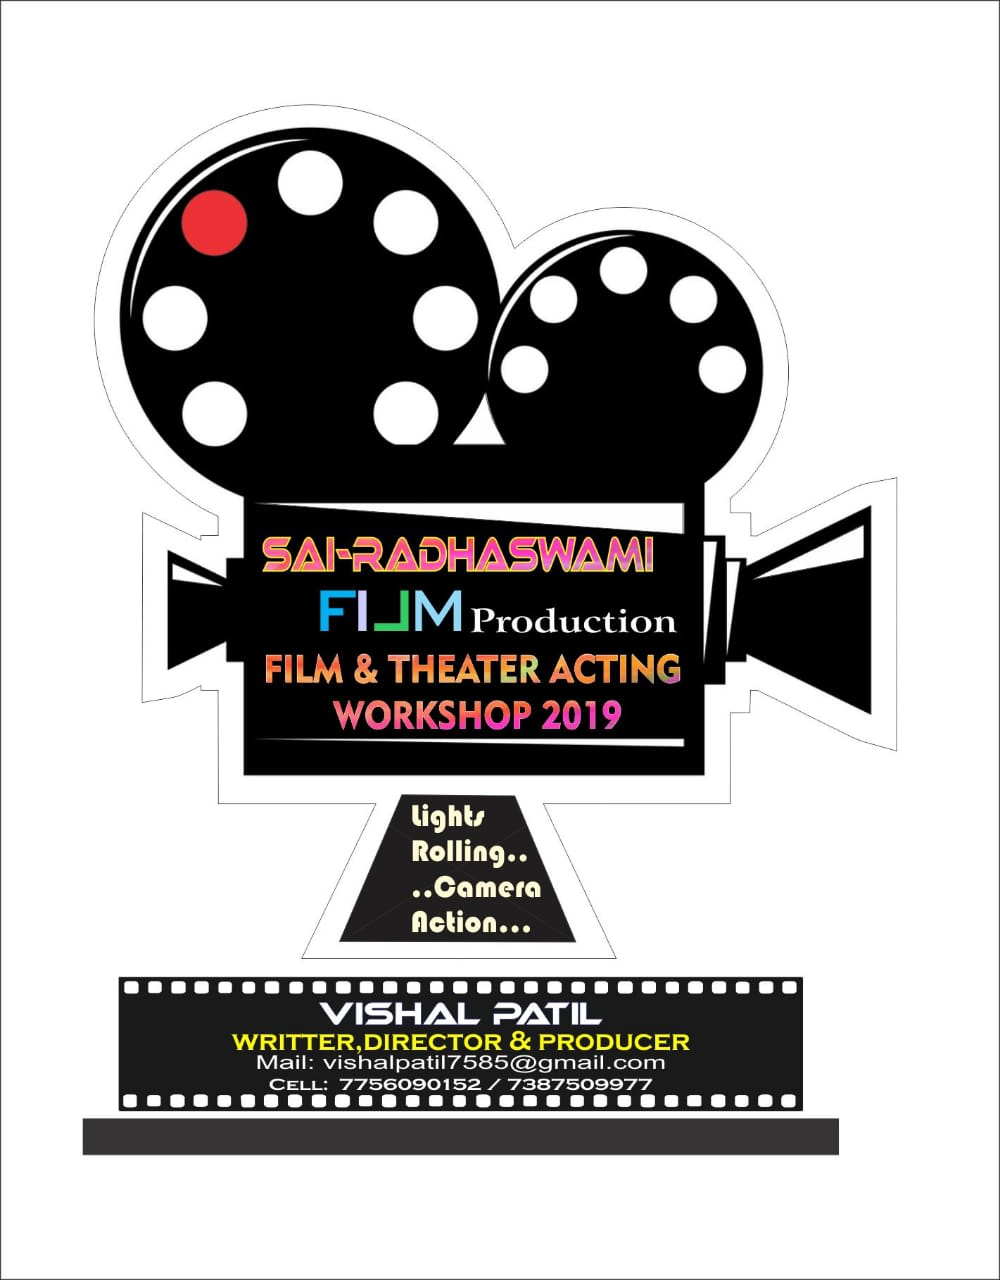 Sai Radha Swami Film Production